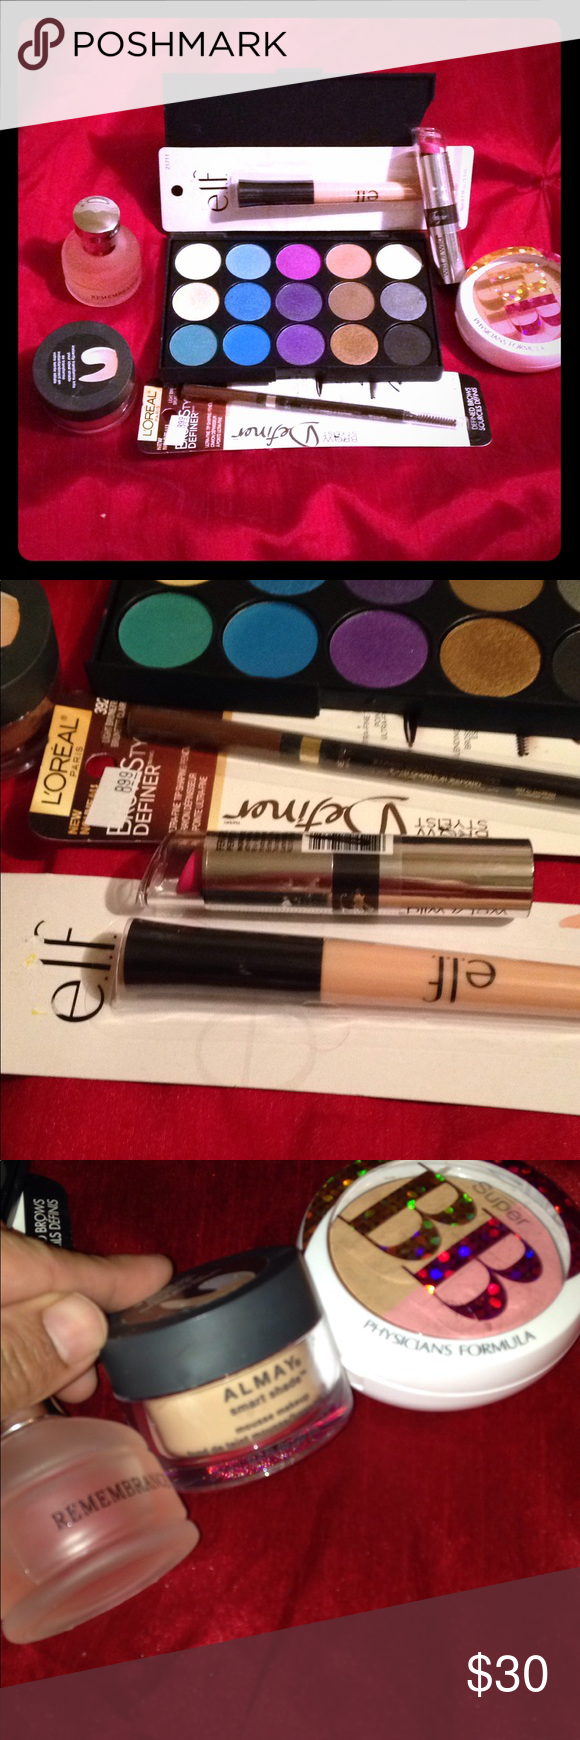 Make up lot L'Oréal brow stylus definer brow pencil in